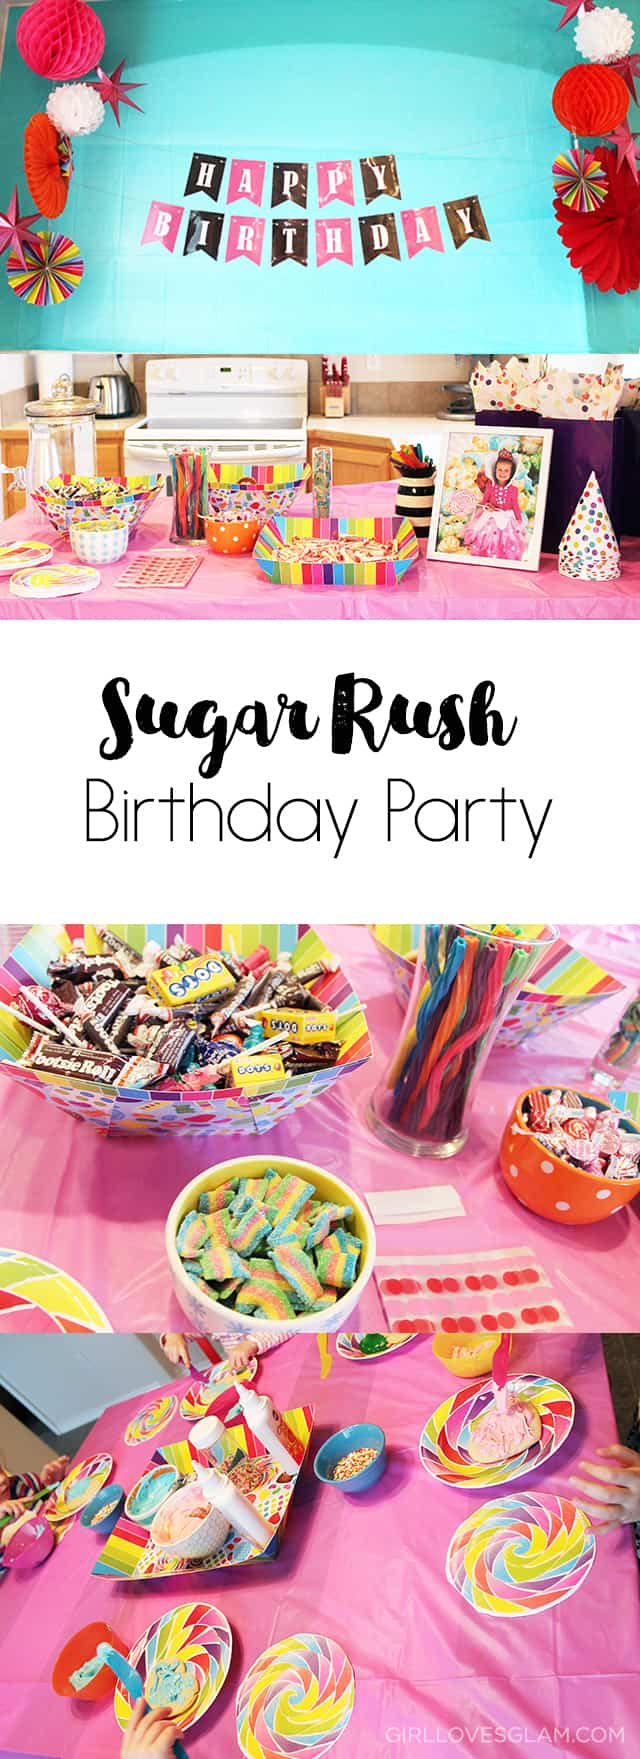 Sugar Rush Birthday Party On Girllovesglam